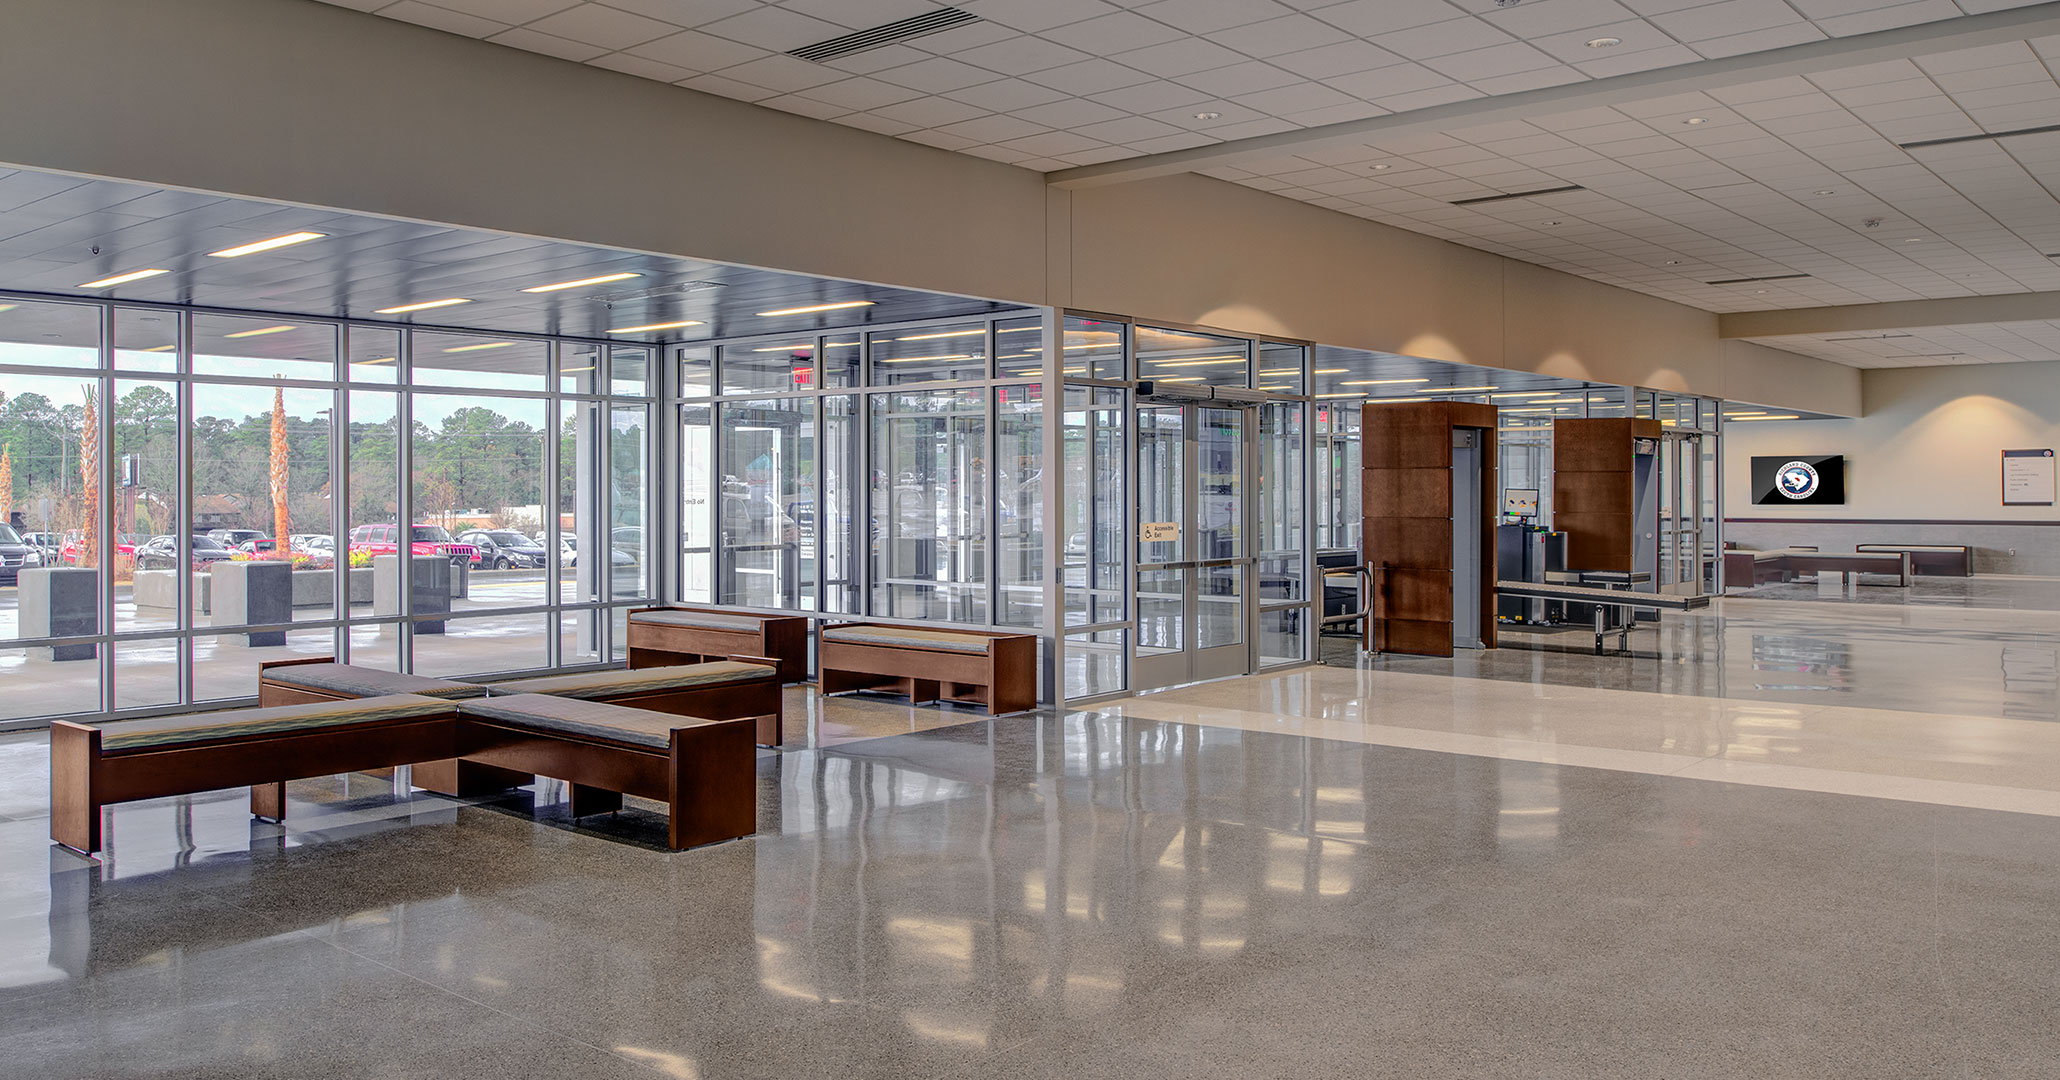 Richland County worked with Boudreaux architects to design a modern courthouse.